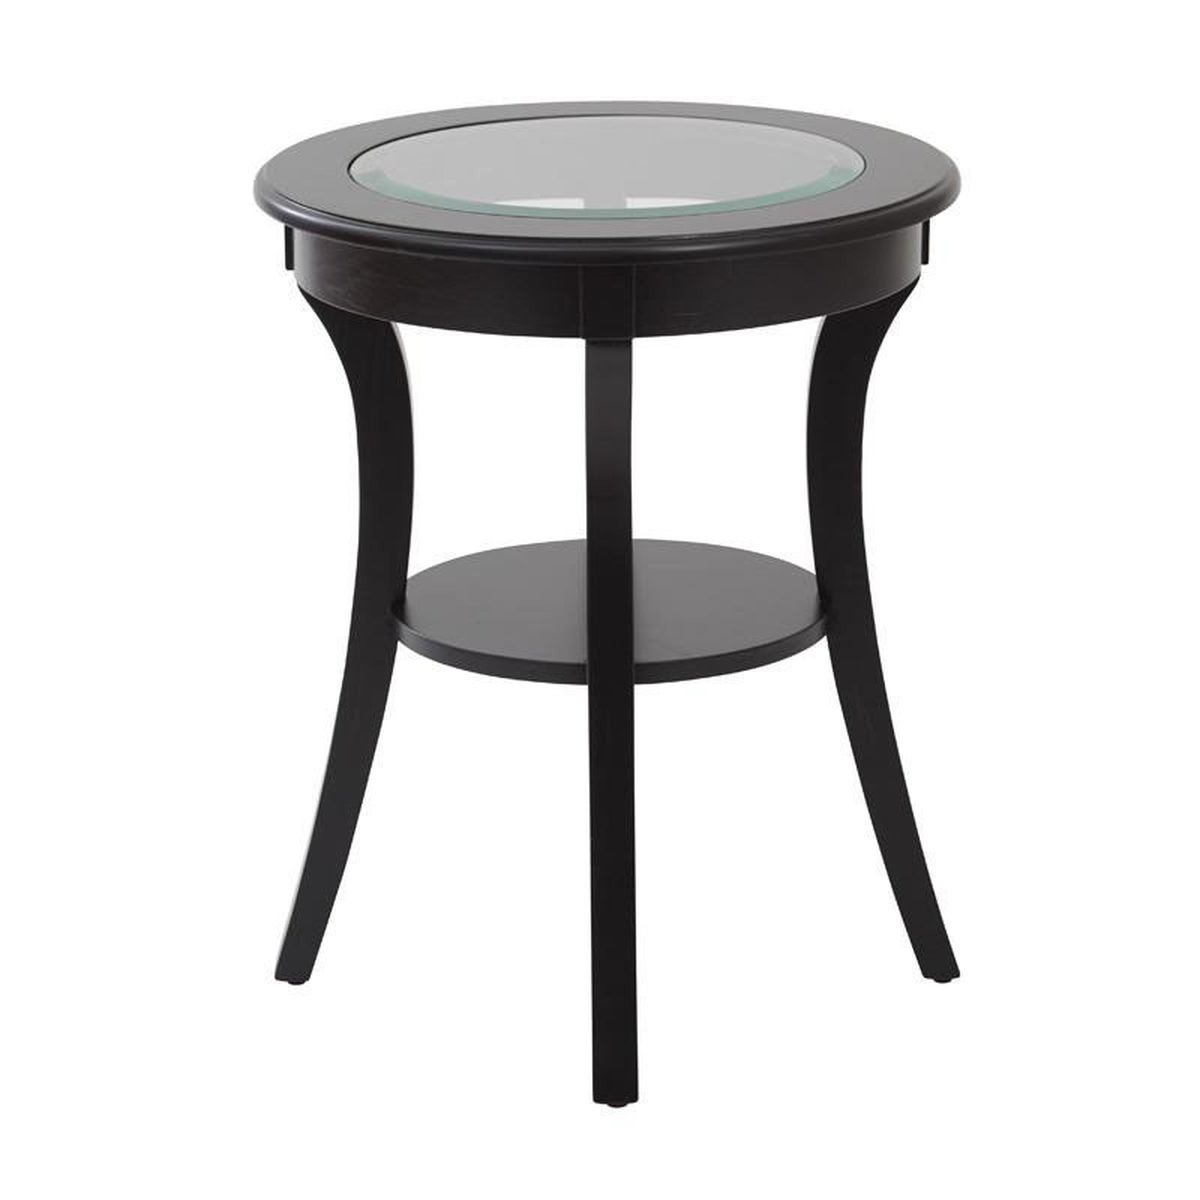 harper black glass accent table bizchair office star products our osp designs round top with wood finish and shelf pottery barn chair high console zinc battery operated dining